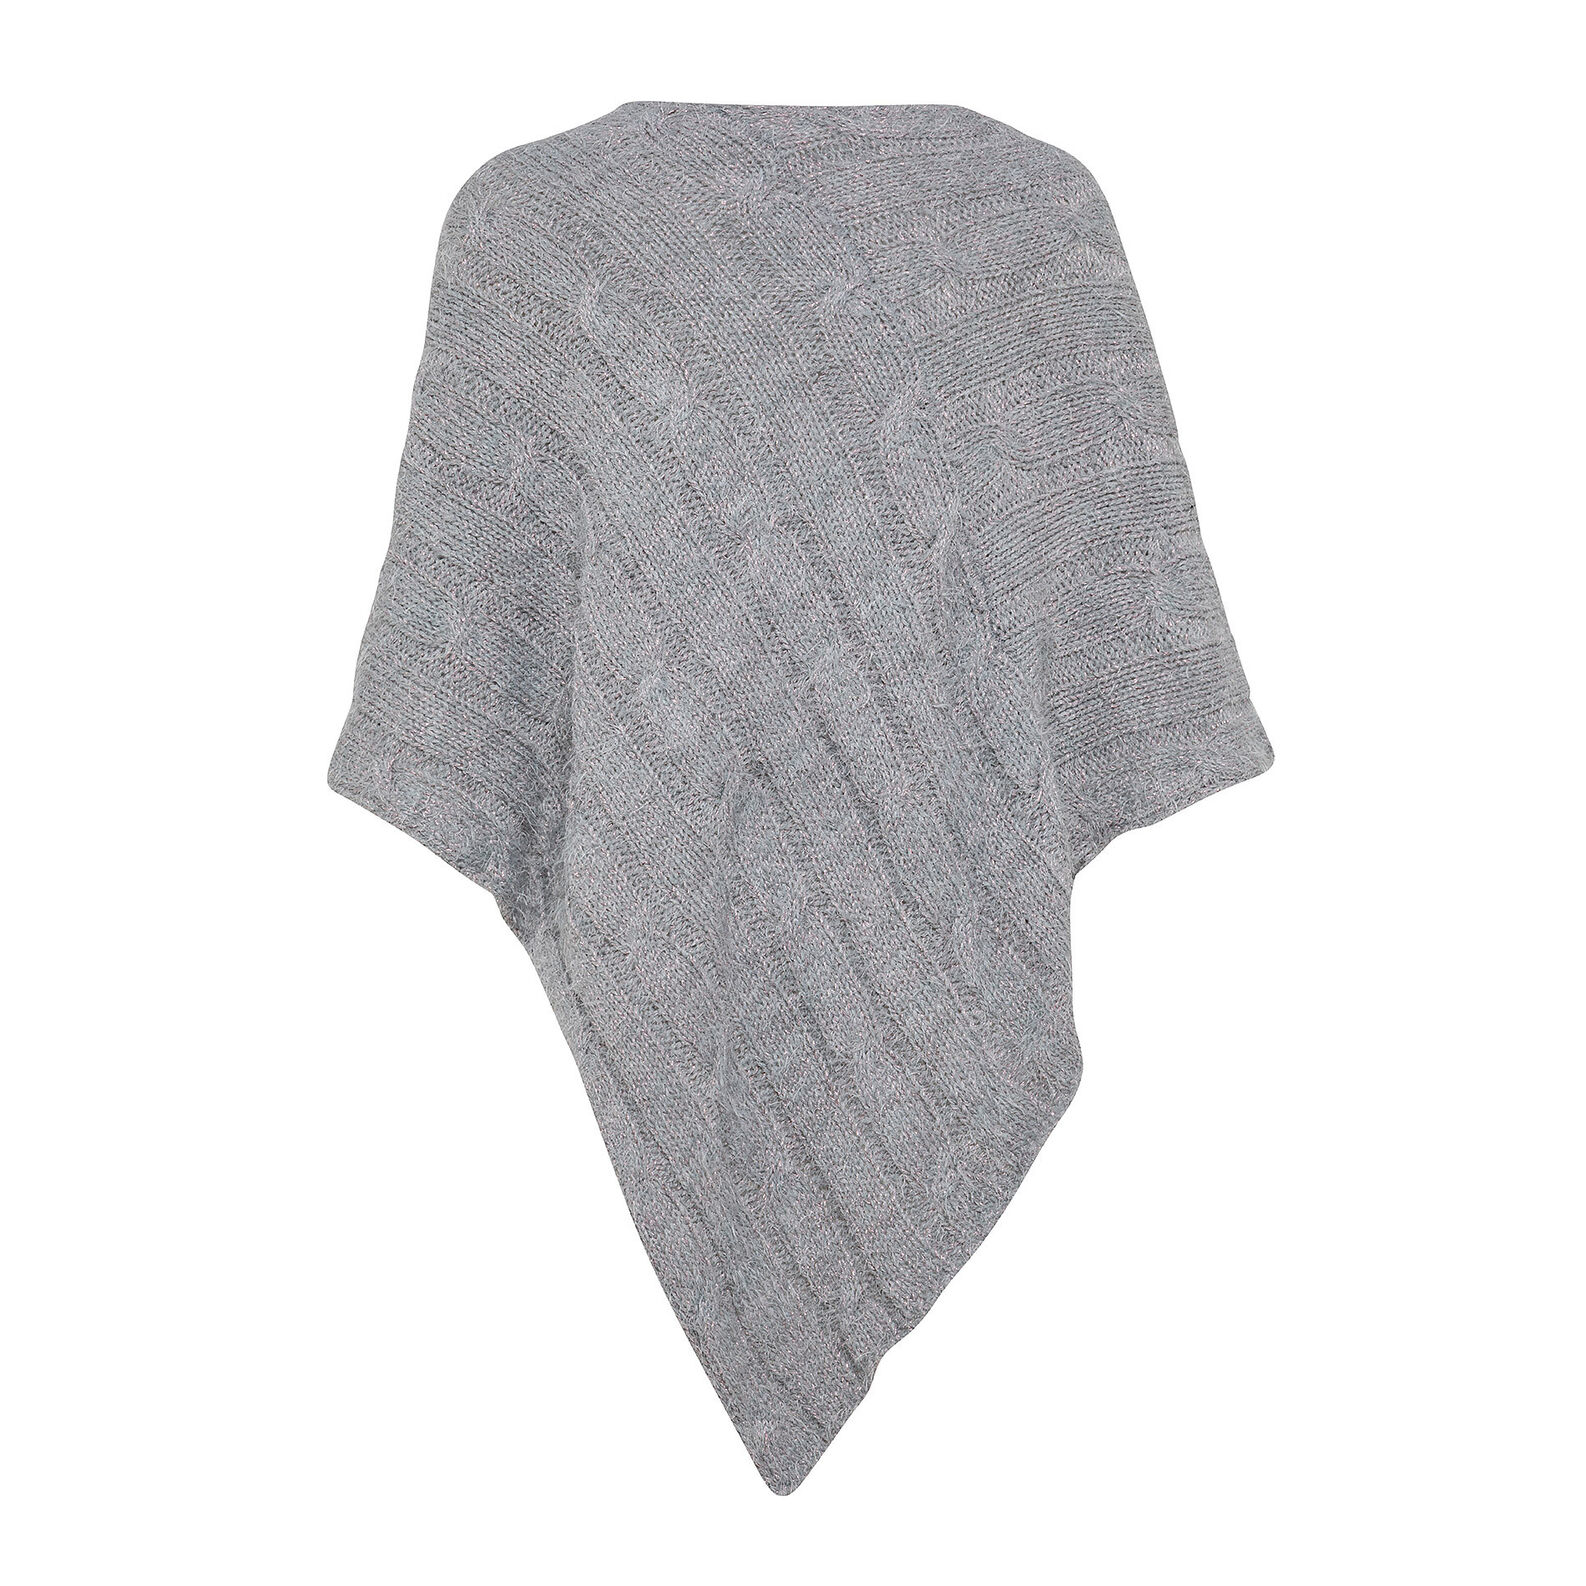 Koan knitted poncho scarf with lurex